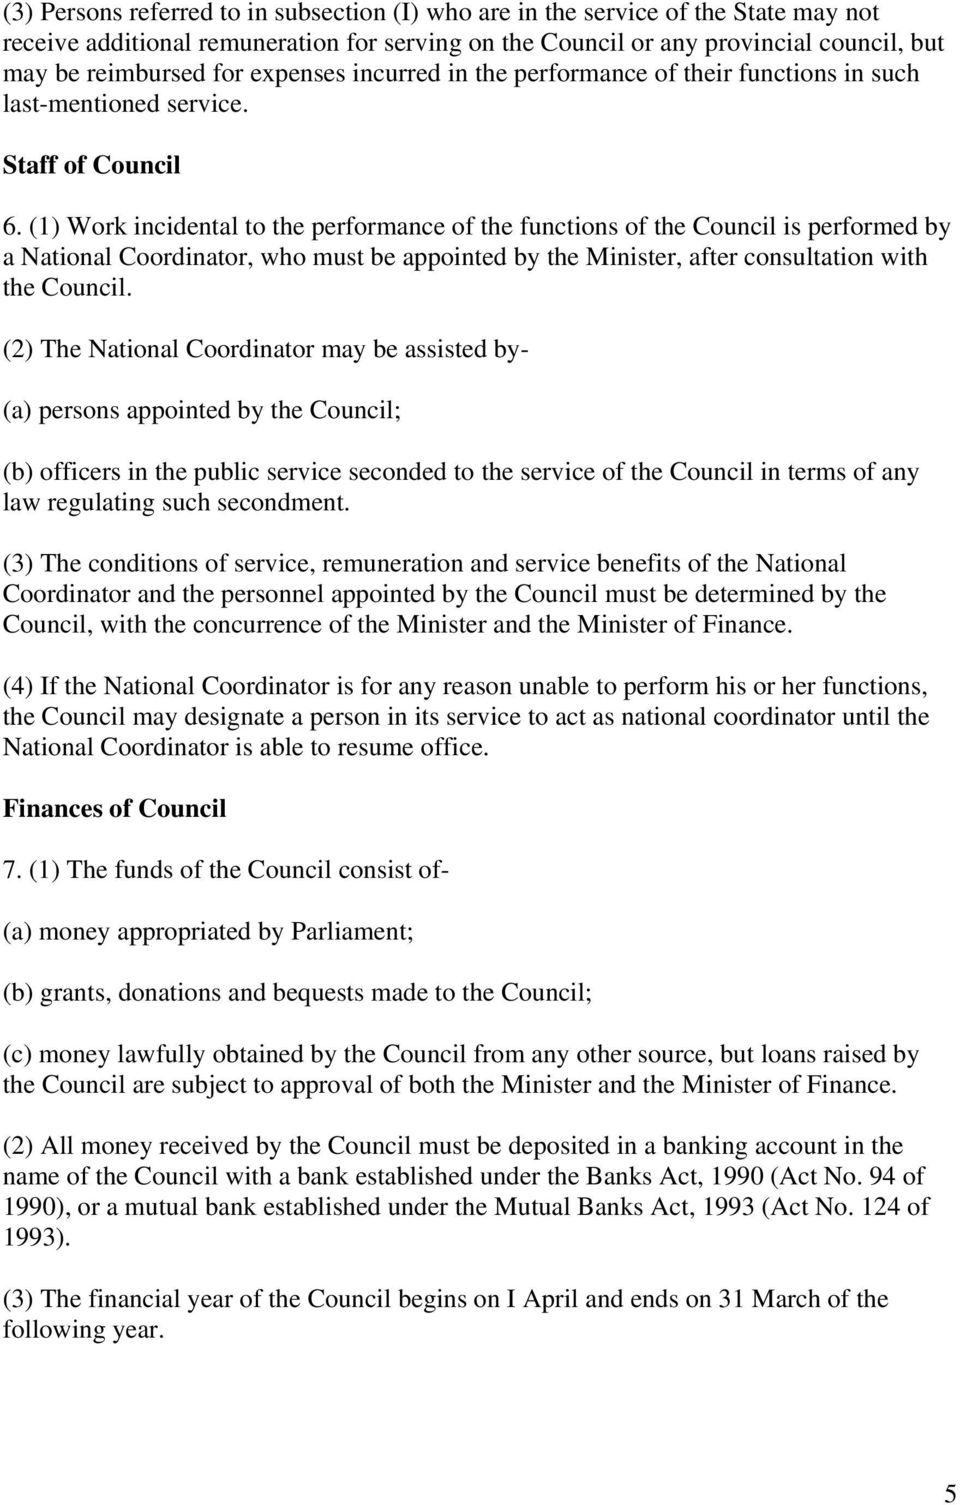 (1) Work incidental to the performance of the functions of the Council is performed by a National Coordinator, who must be appointed by the Minister, after consultation with the Council.